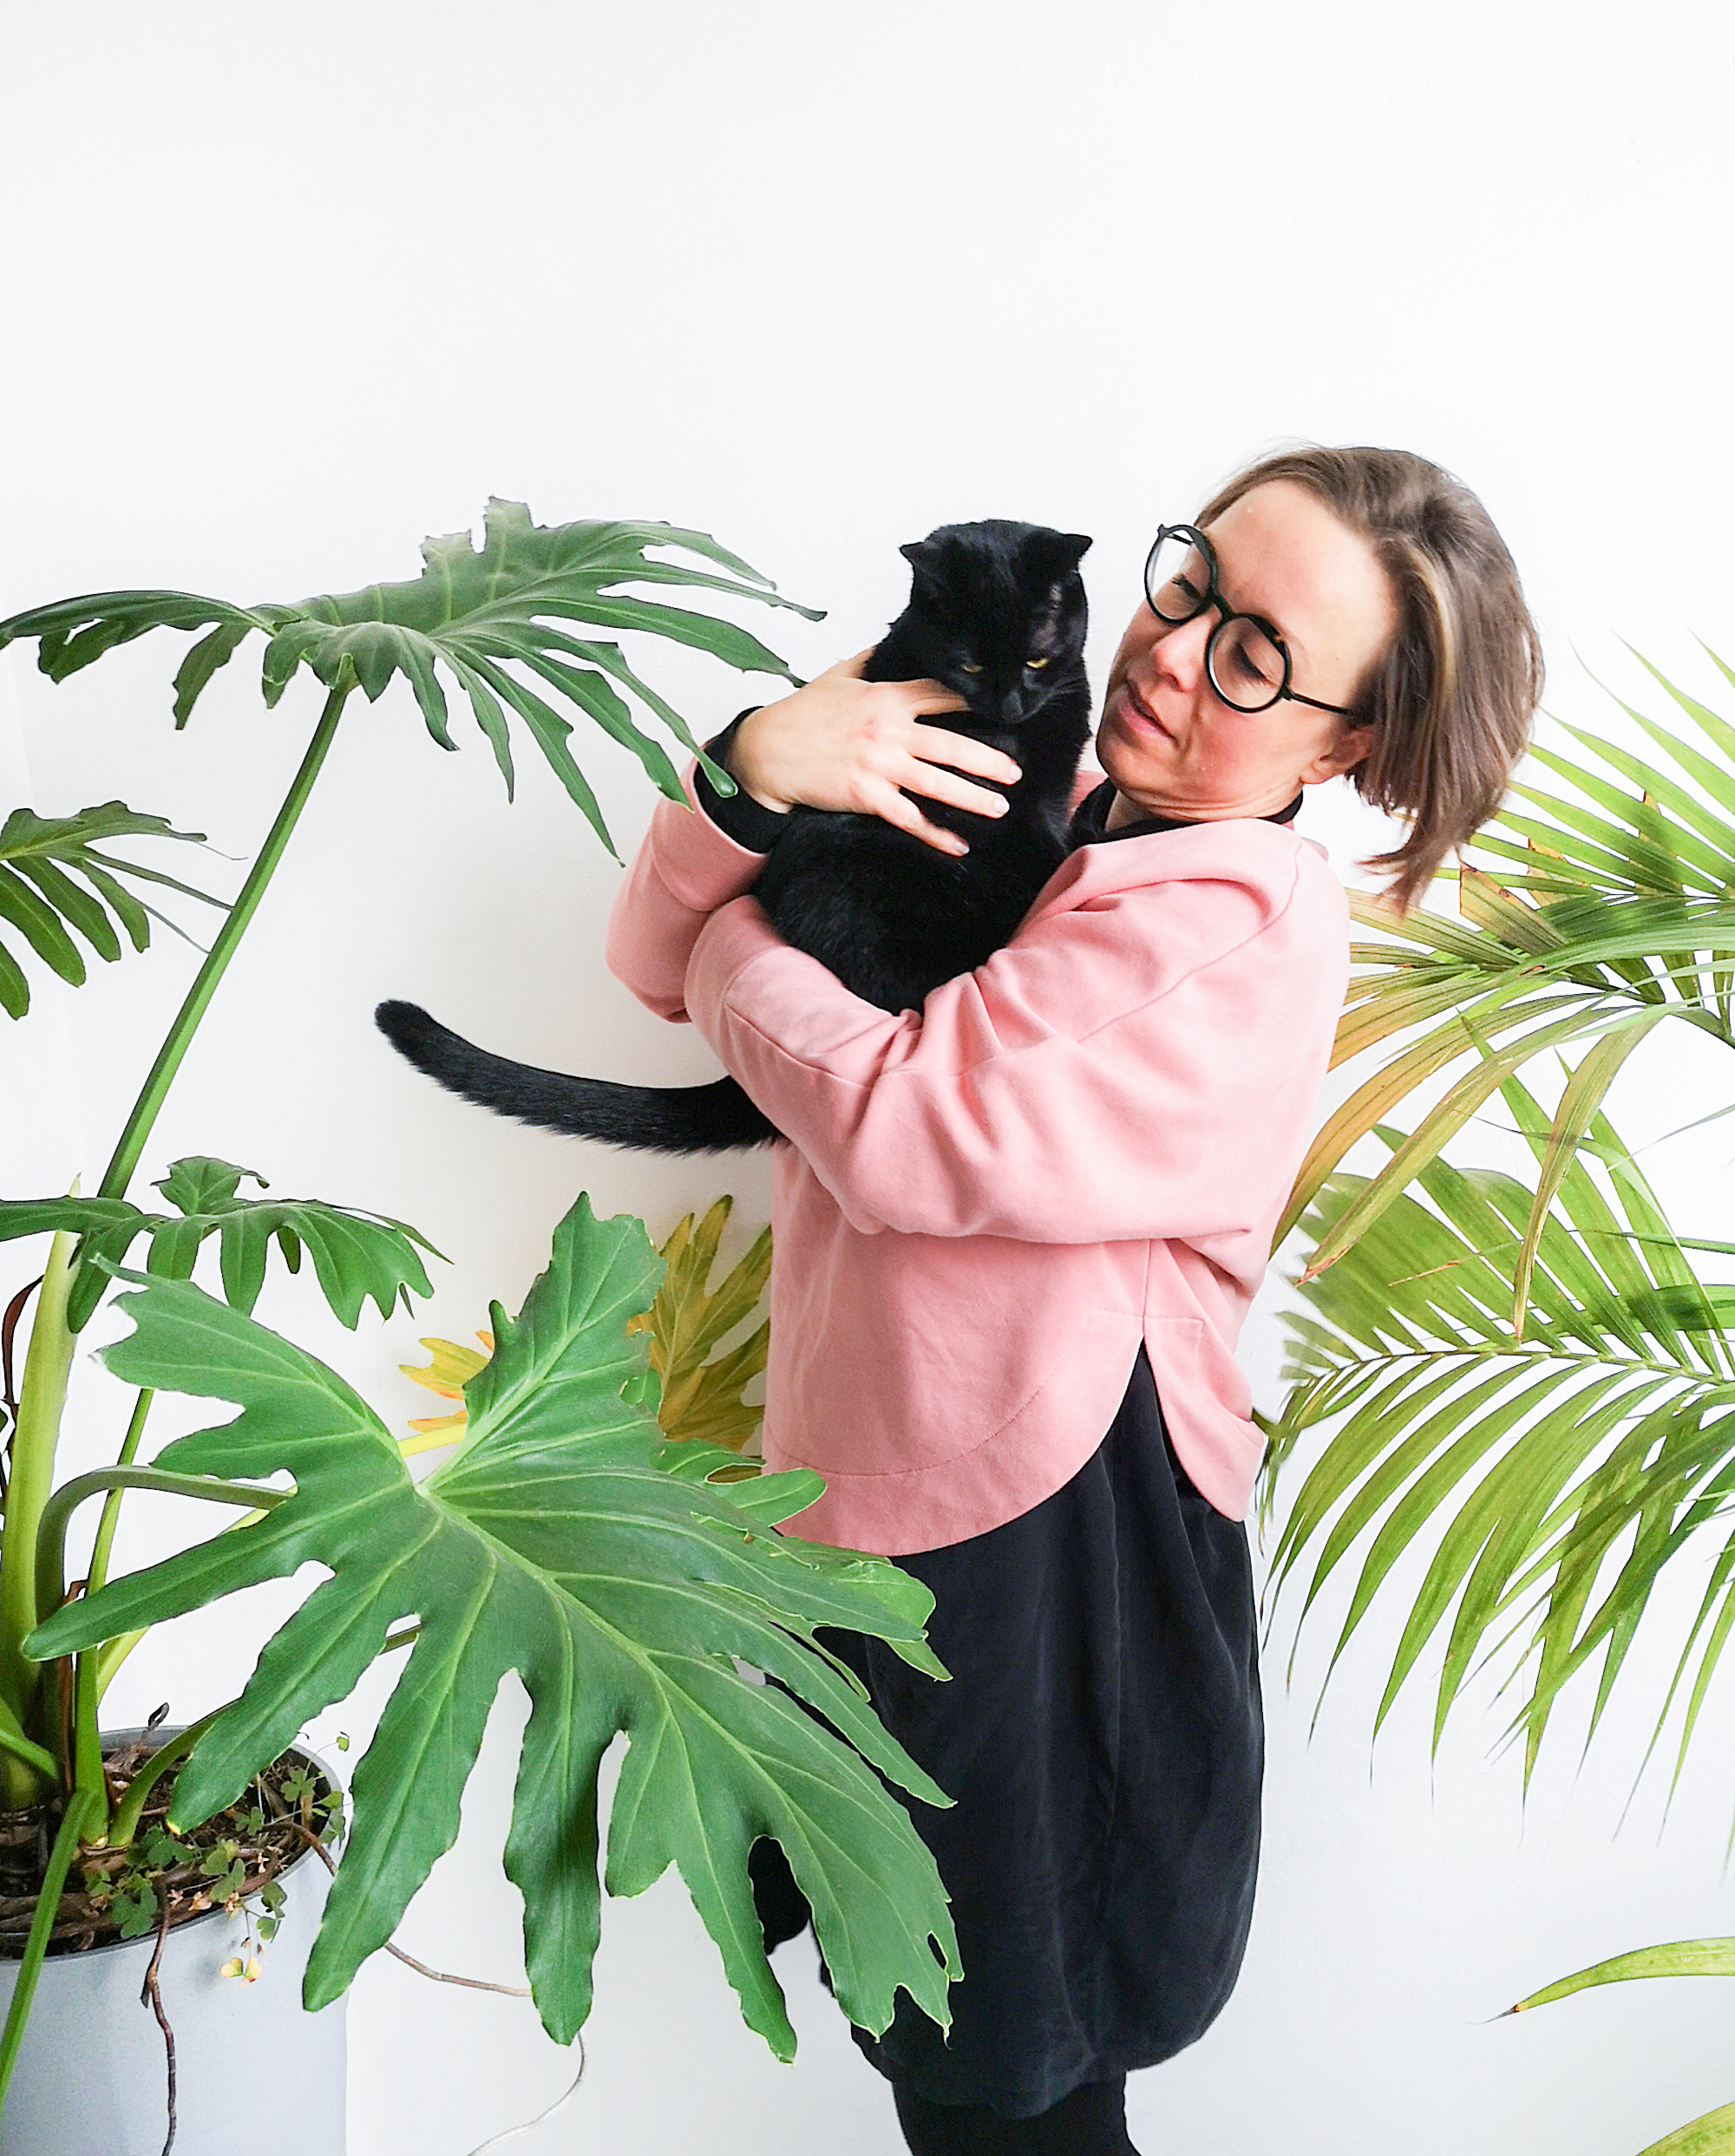 JOELIX.com - Judith de Graaff with Retsina black cat